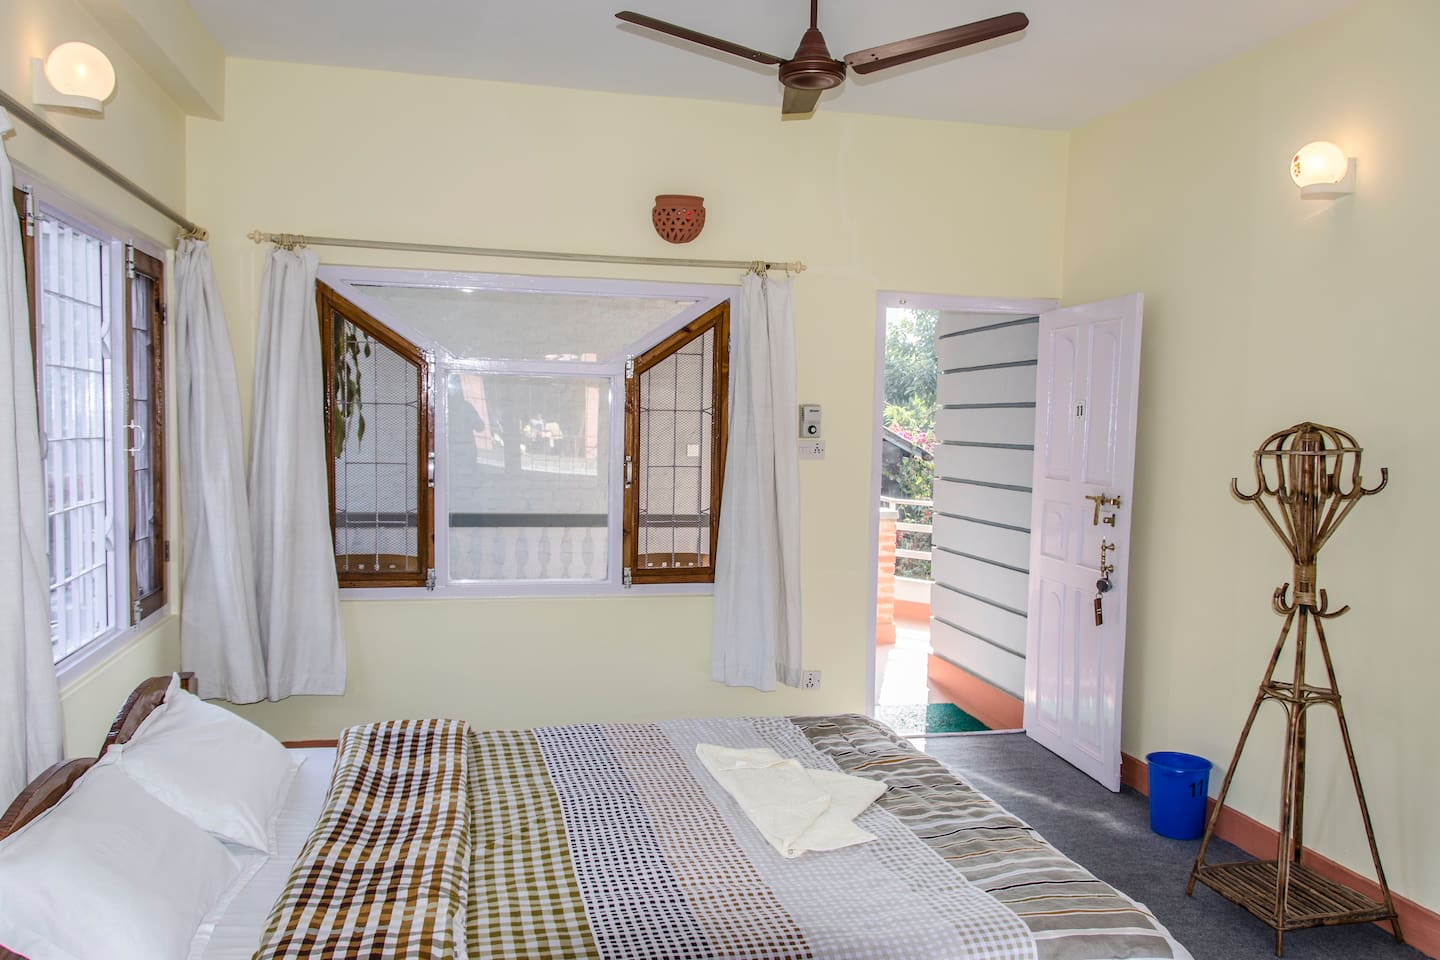 Single room with veranda, 2nd floor